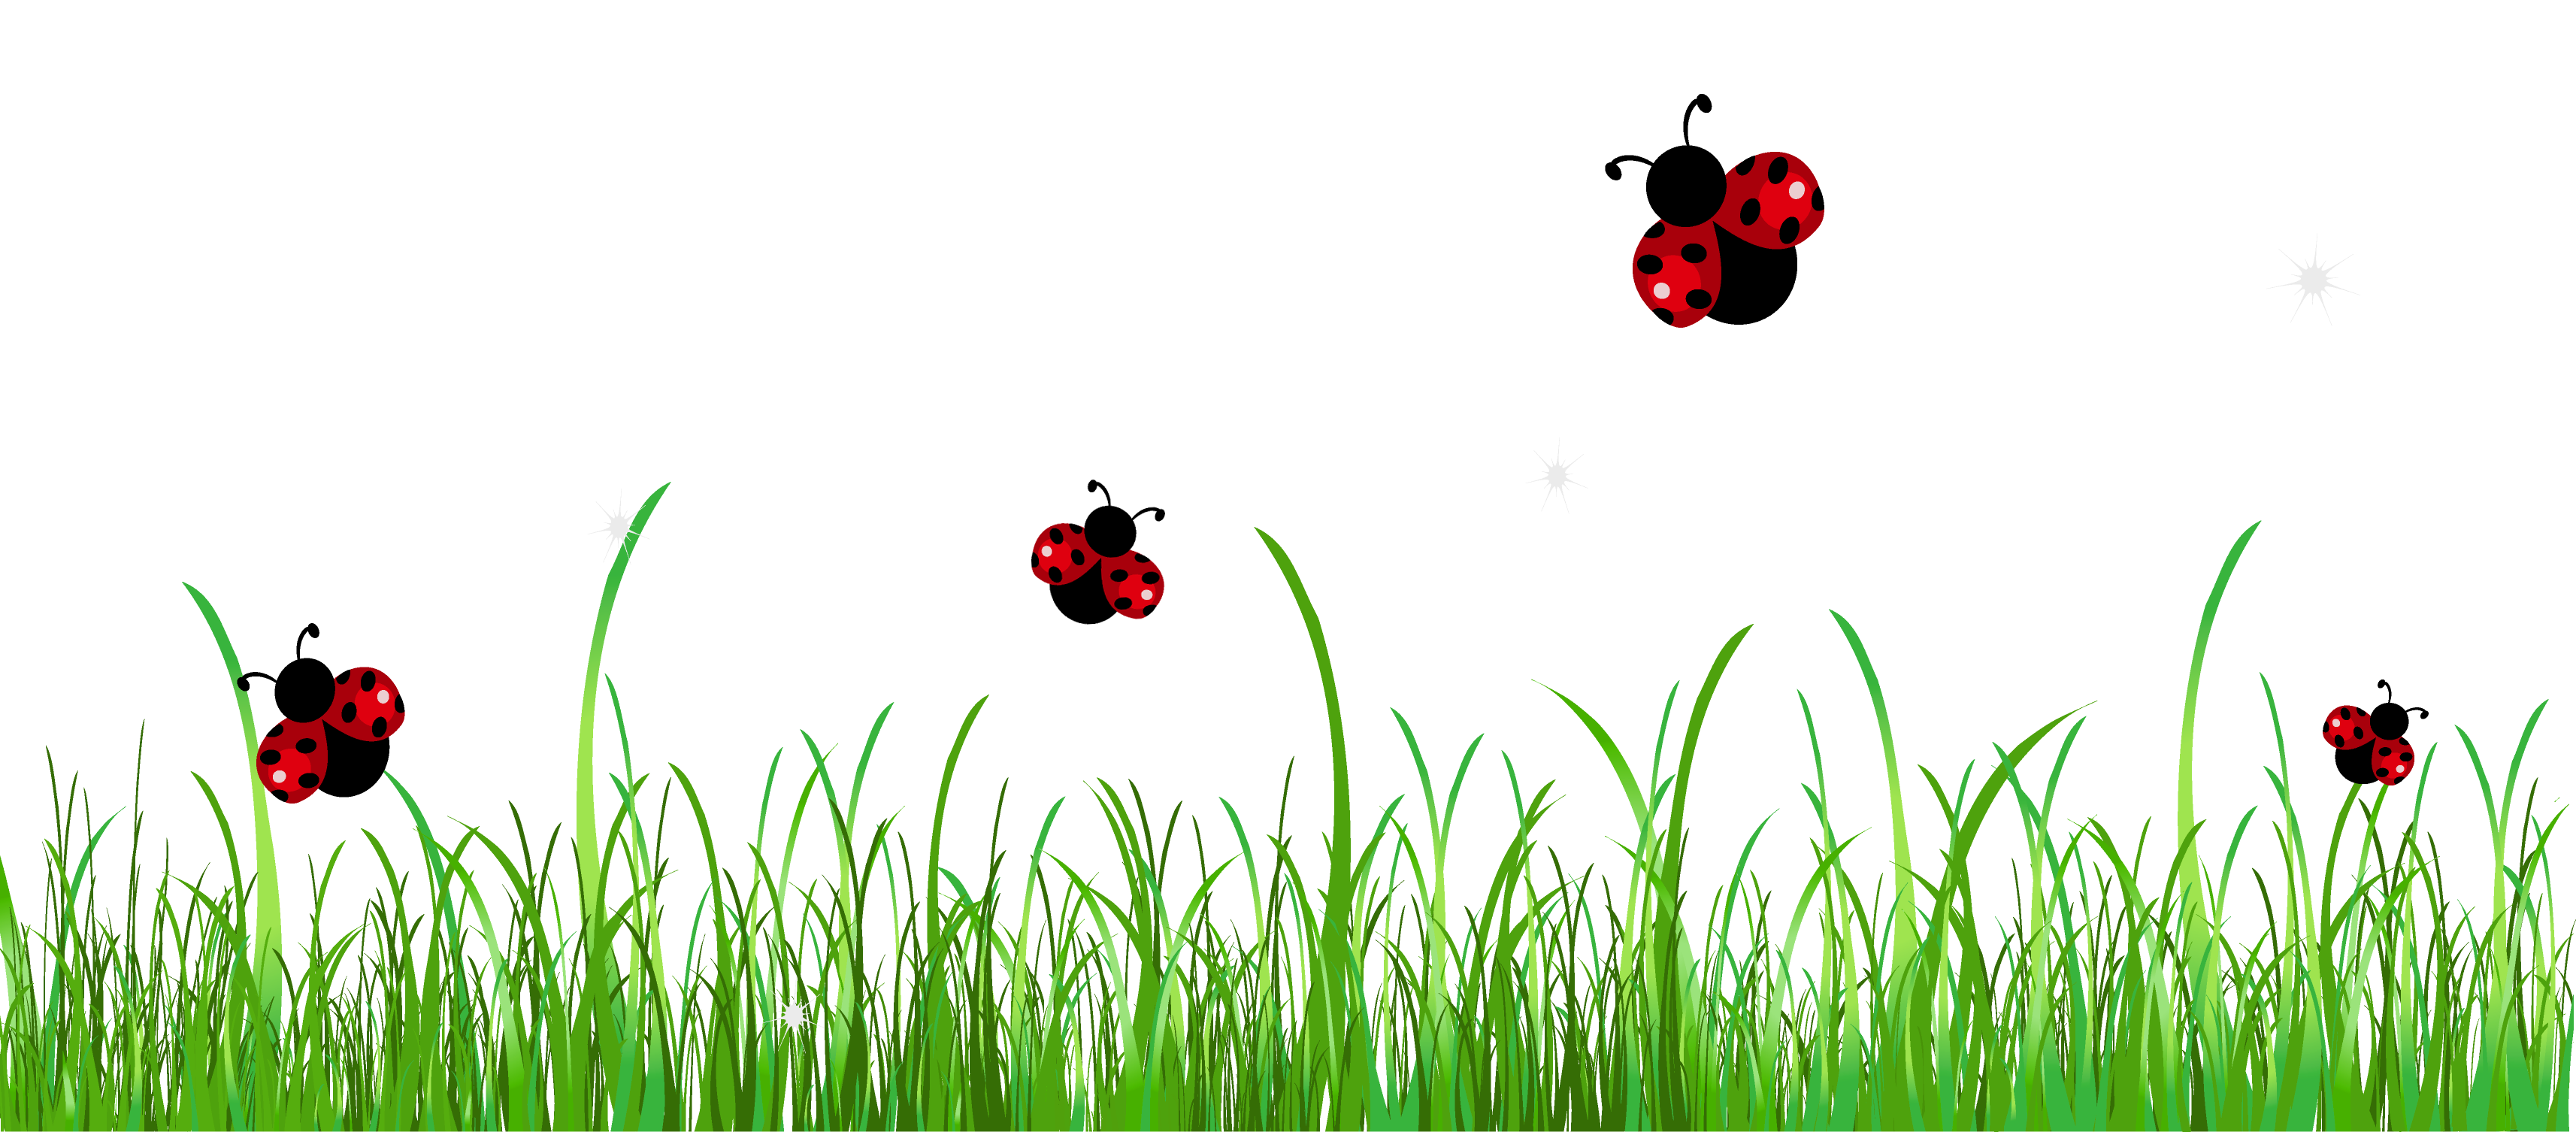 Free Ladybug Cliparts Borders, Download Free Clip Art, Free.